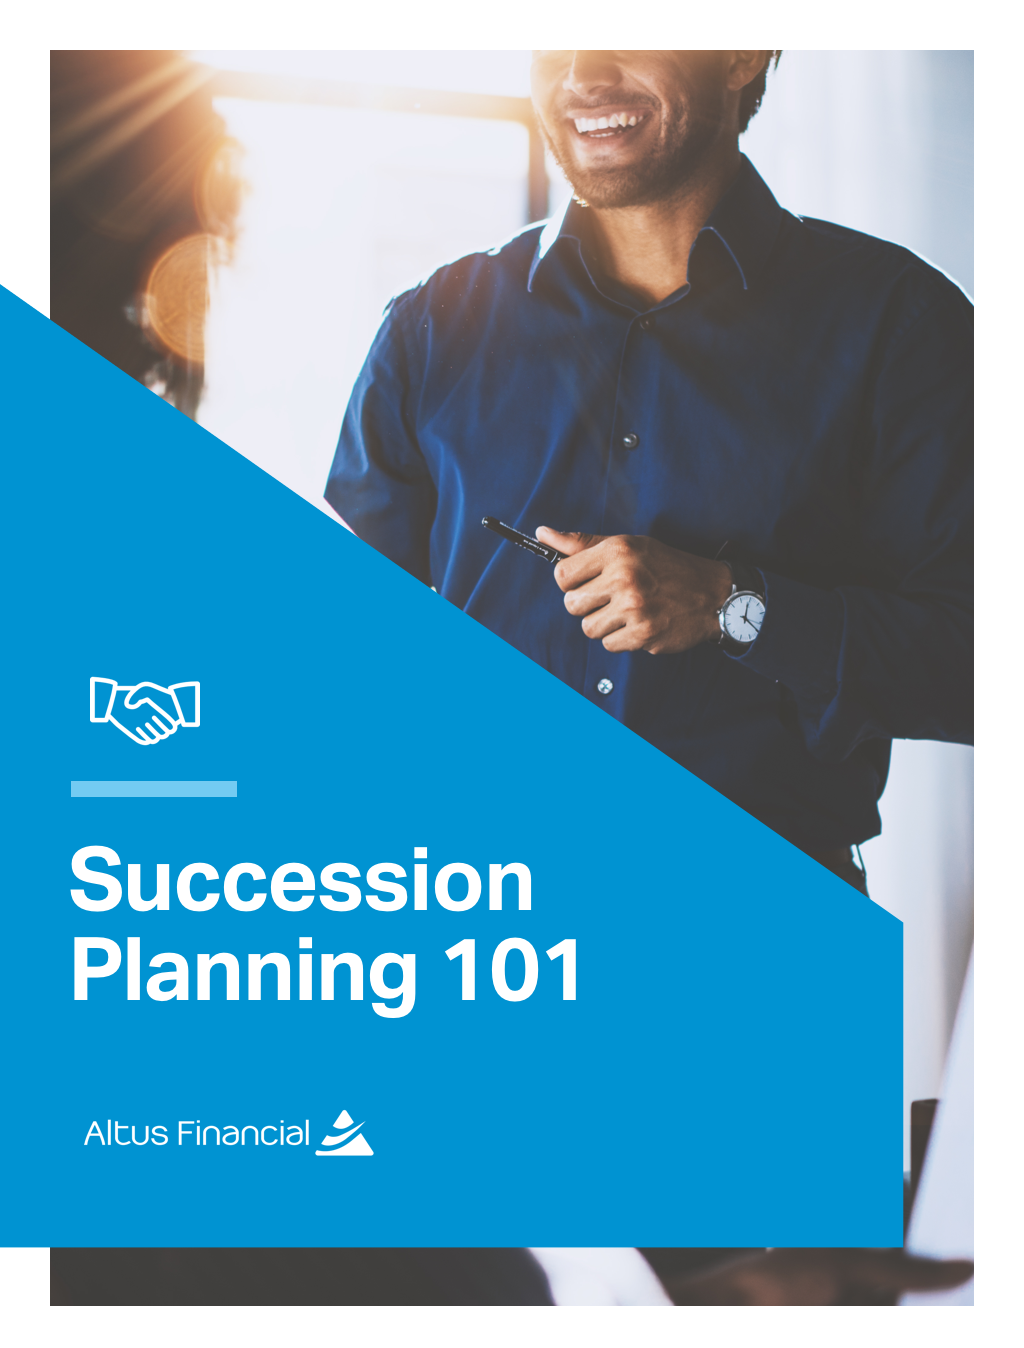 Succession Planning - The Complete Guide